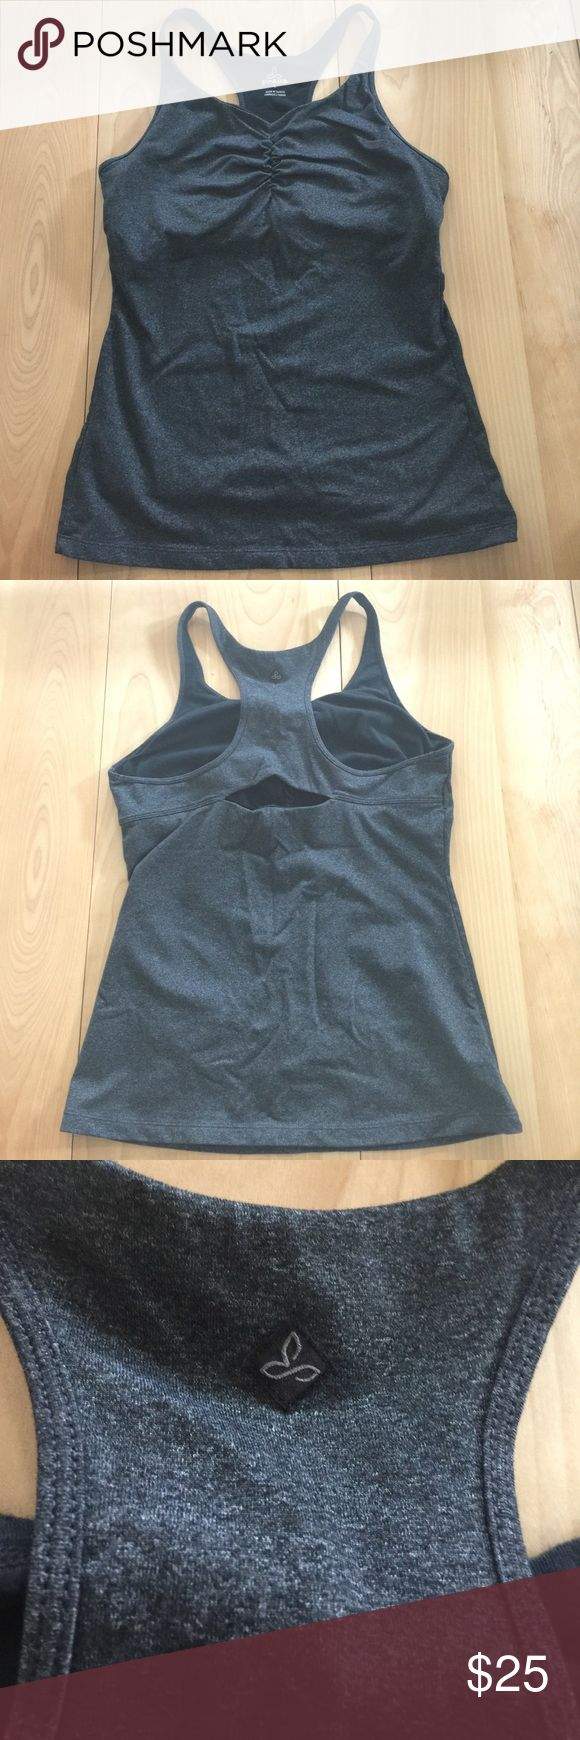 Prana Workout Tank Large Charcoal Prana Workout Tank Large Charcoal. Peek a Boo detail in the back. Bra lining. Used, good condition. No pilling on outside of top. Minimal pilling in lining. Classic basic for workouts. Prana Tops Tank Tops